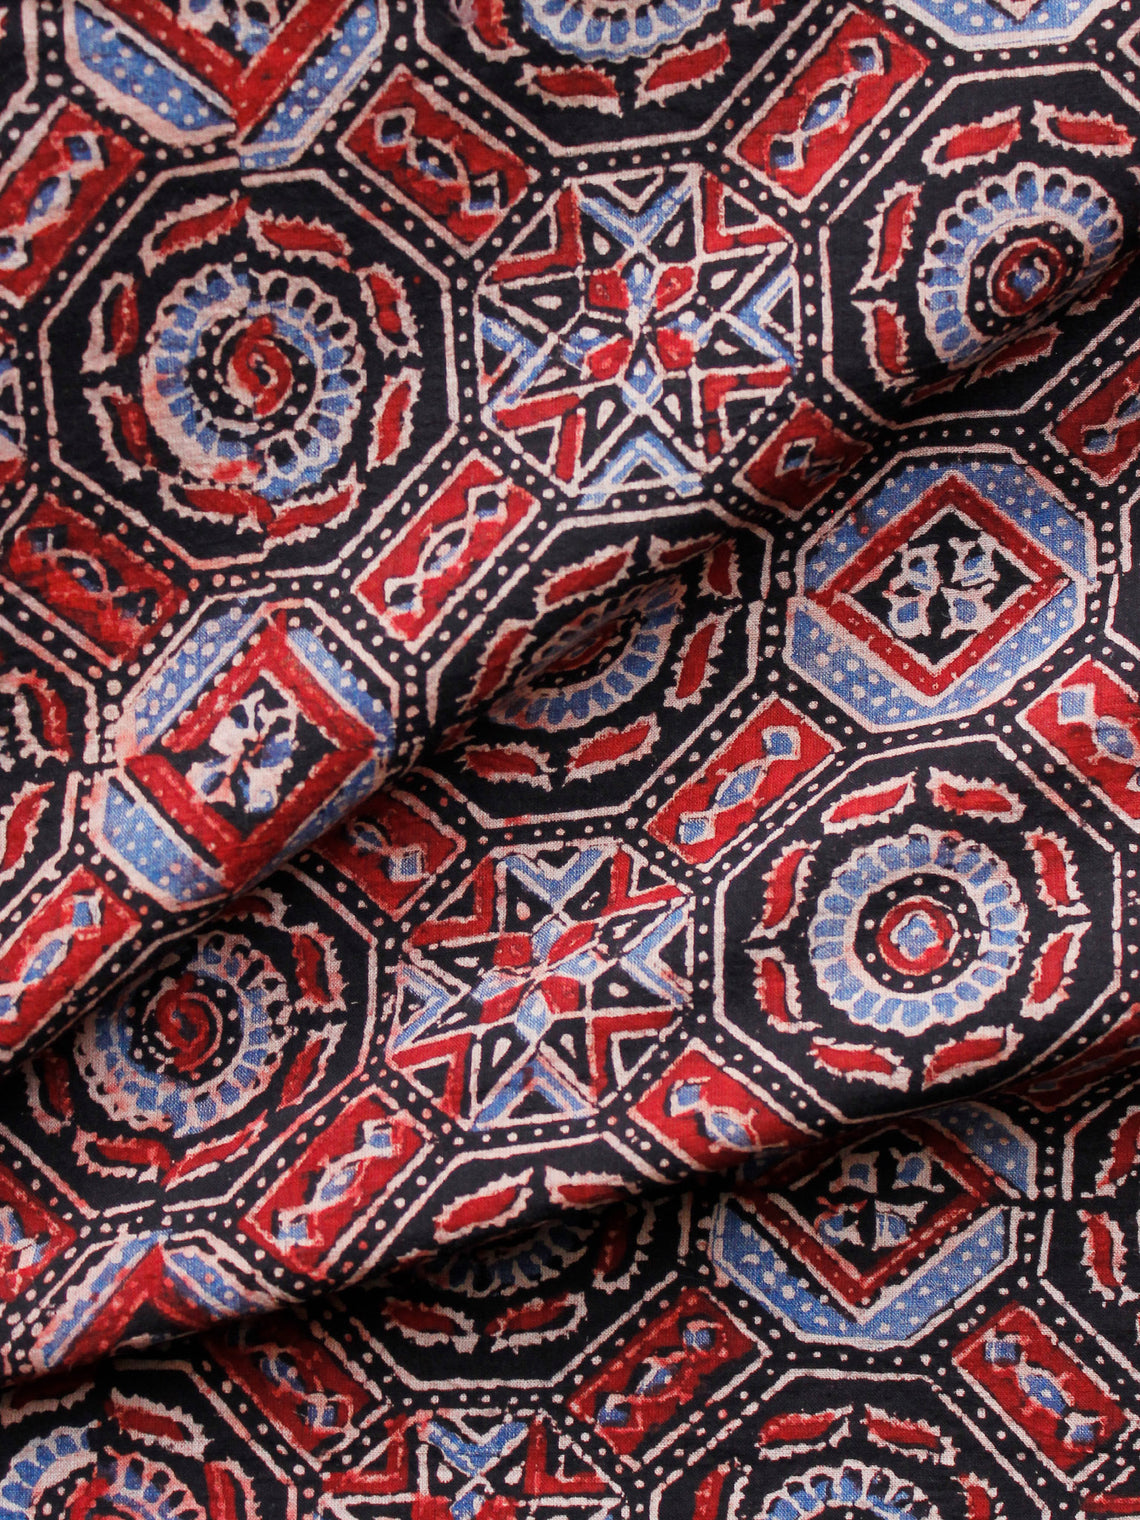 Black Maroon Blue Ivory Ajrakh Hand Block Printed Cotton Fabric Per Meter - F003F1632